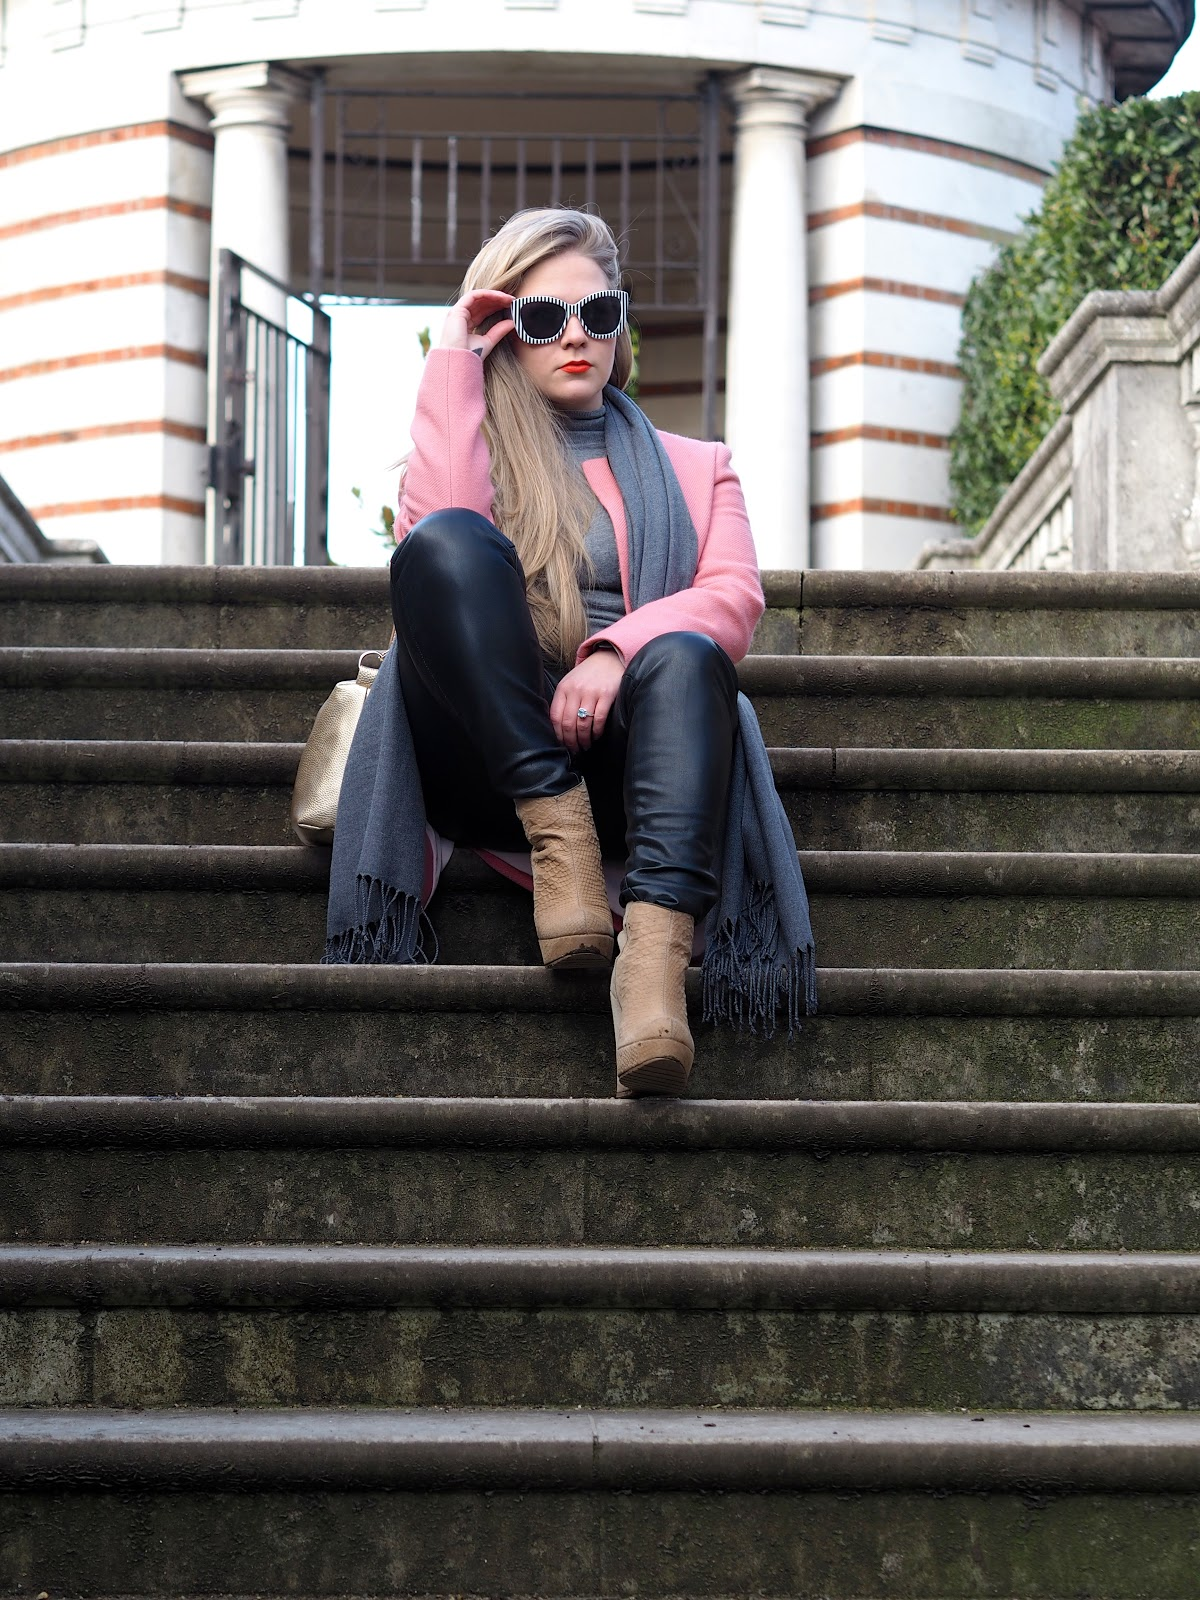 Blonde girl wearing sunglasses and pink coat sitting on grey steps